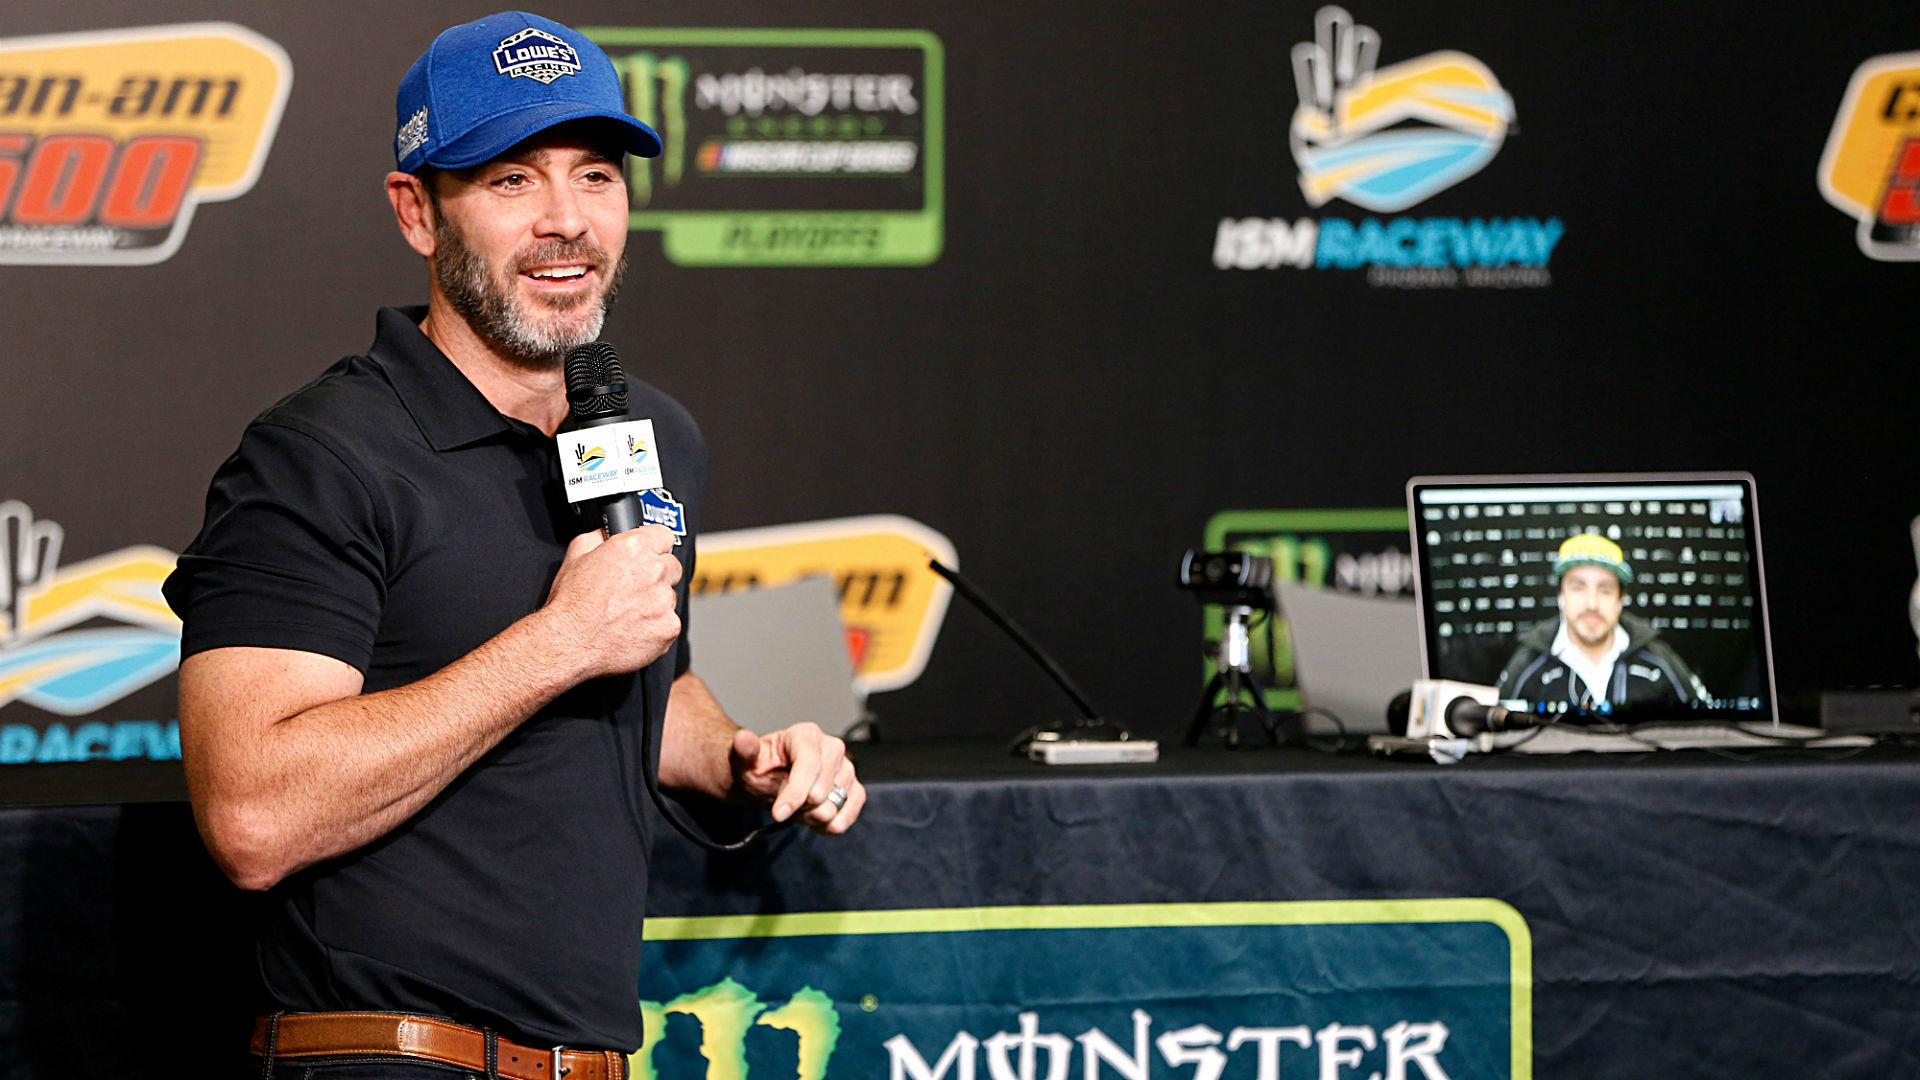 Jimmie Johnson psyched for car swap with Formula 1 champ Fernando Alonso